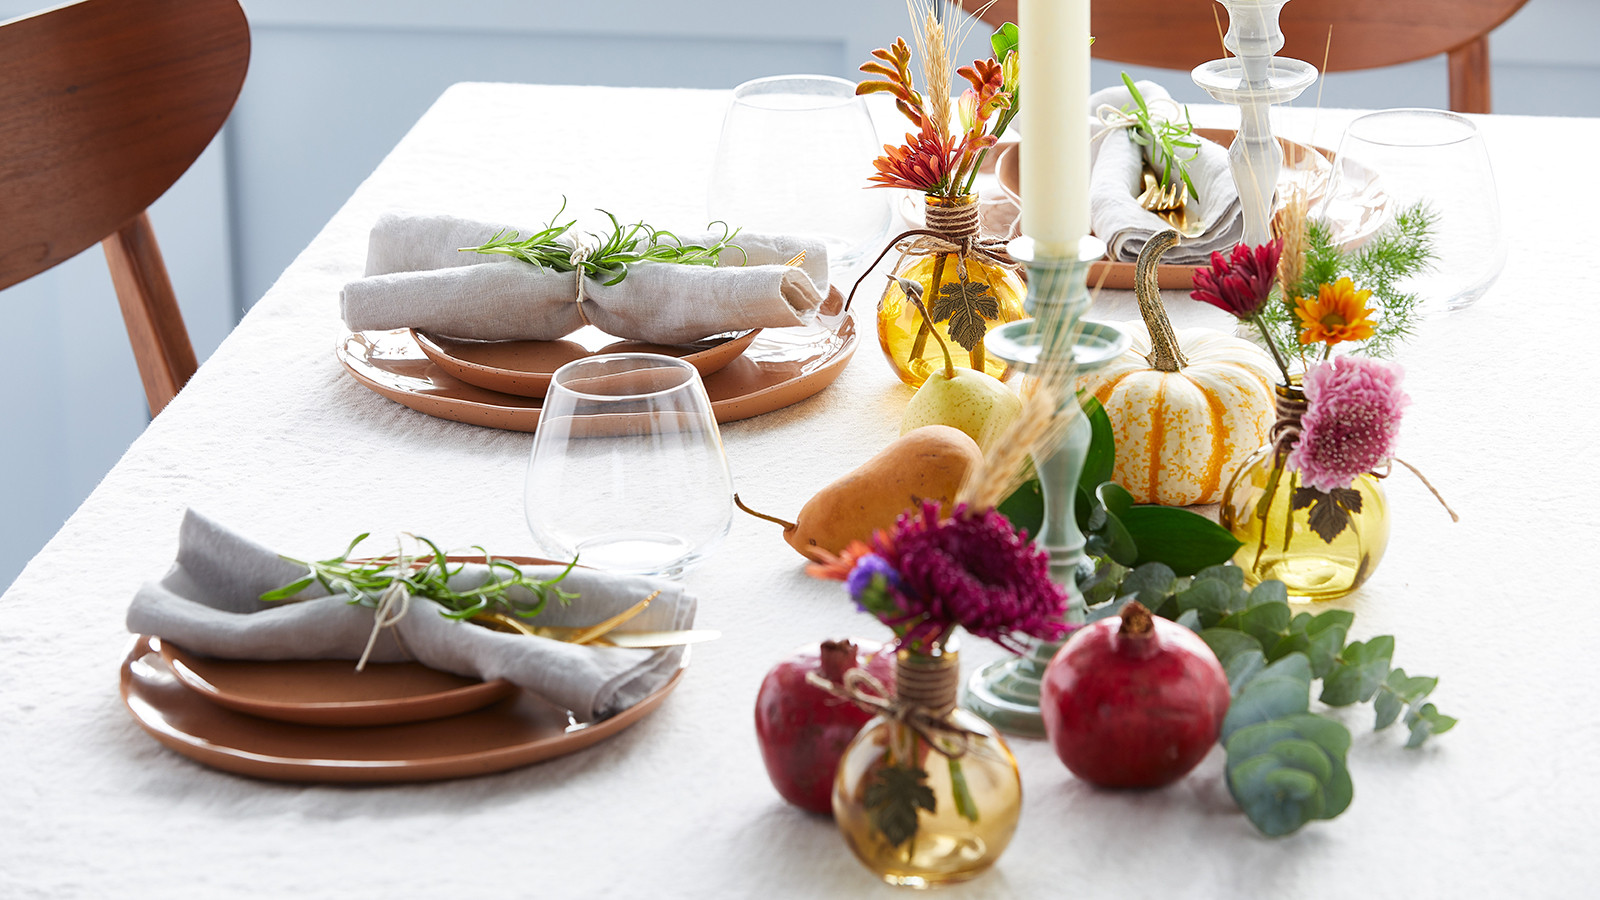 Fresh Market Thanksgiving Dinner  Thanksgiving Dinner & Food Tips Deliciously Simplified